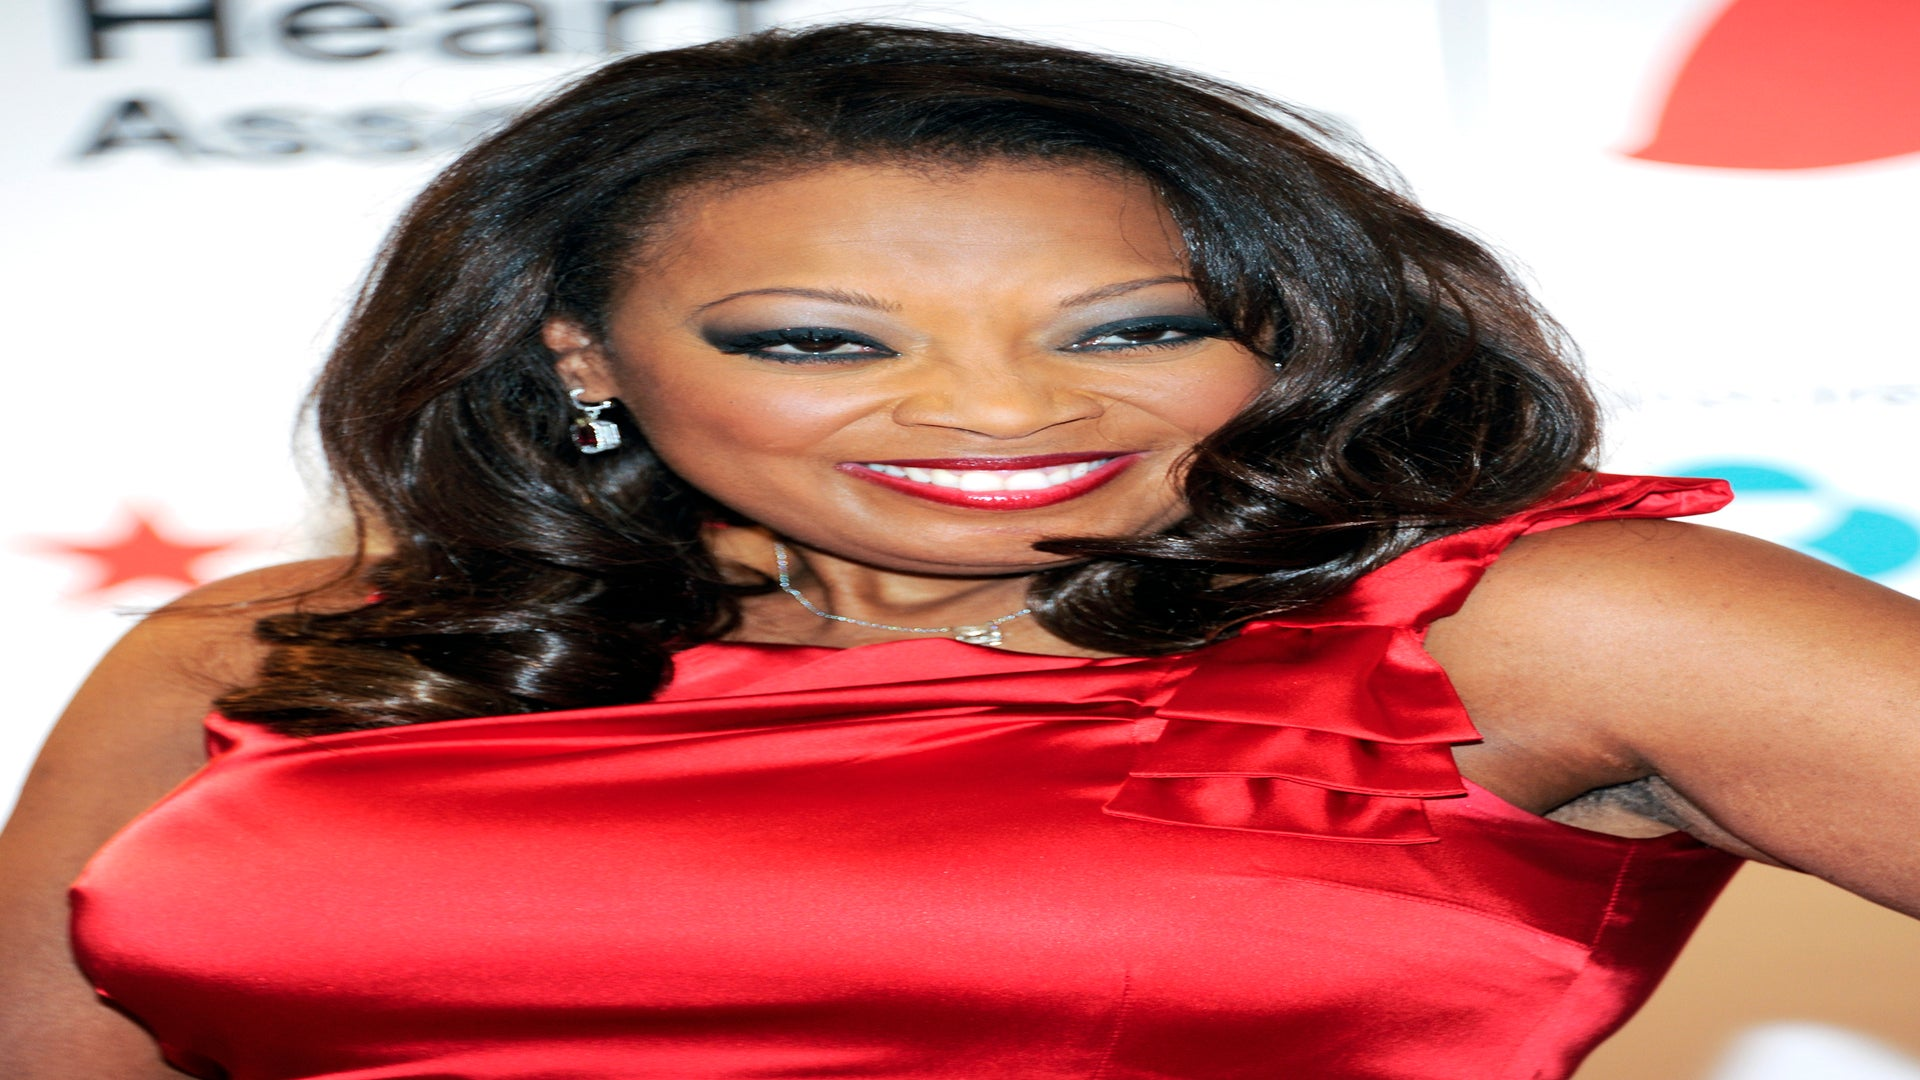 Star Jones on 'Basketball Wives' Drama: 'Enough is Enough'